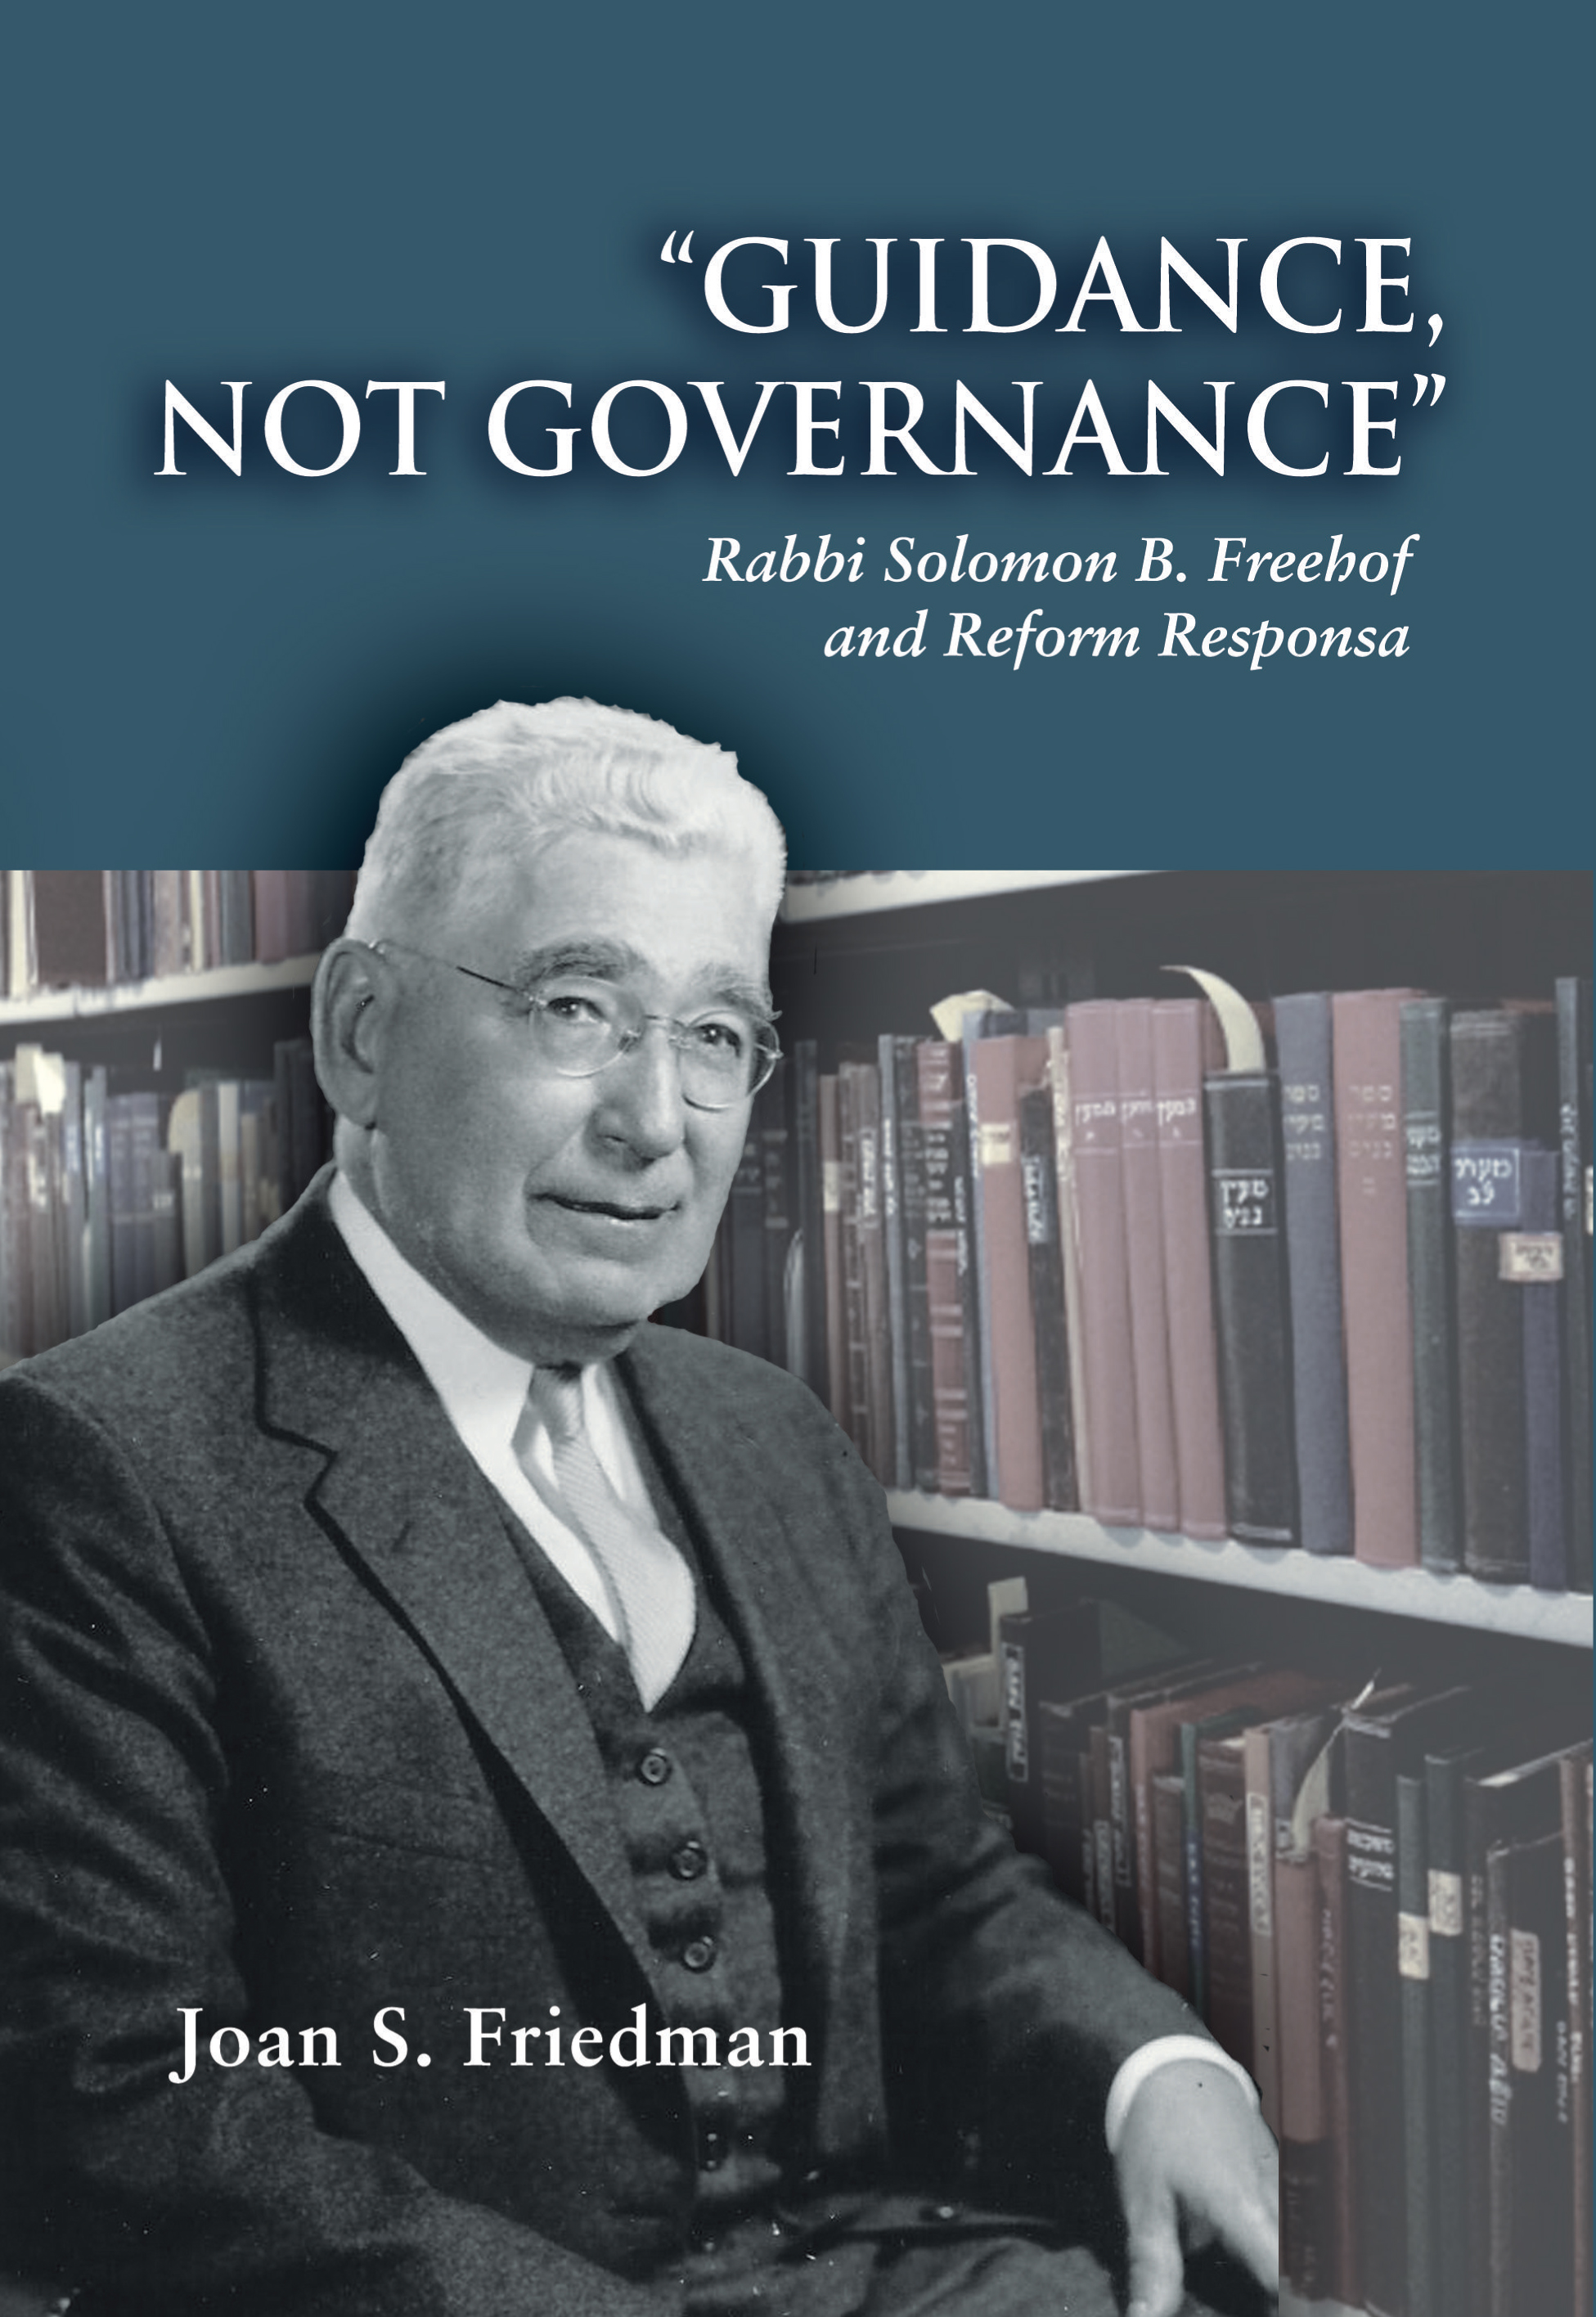 Friedman cover image